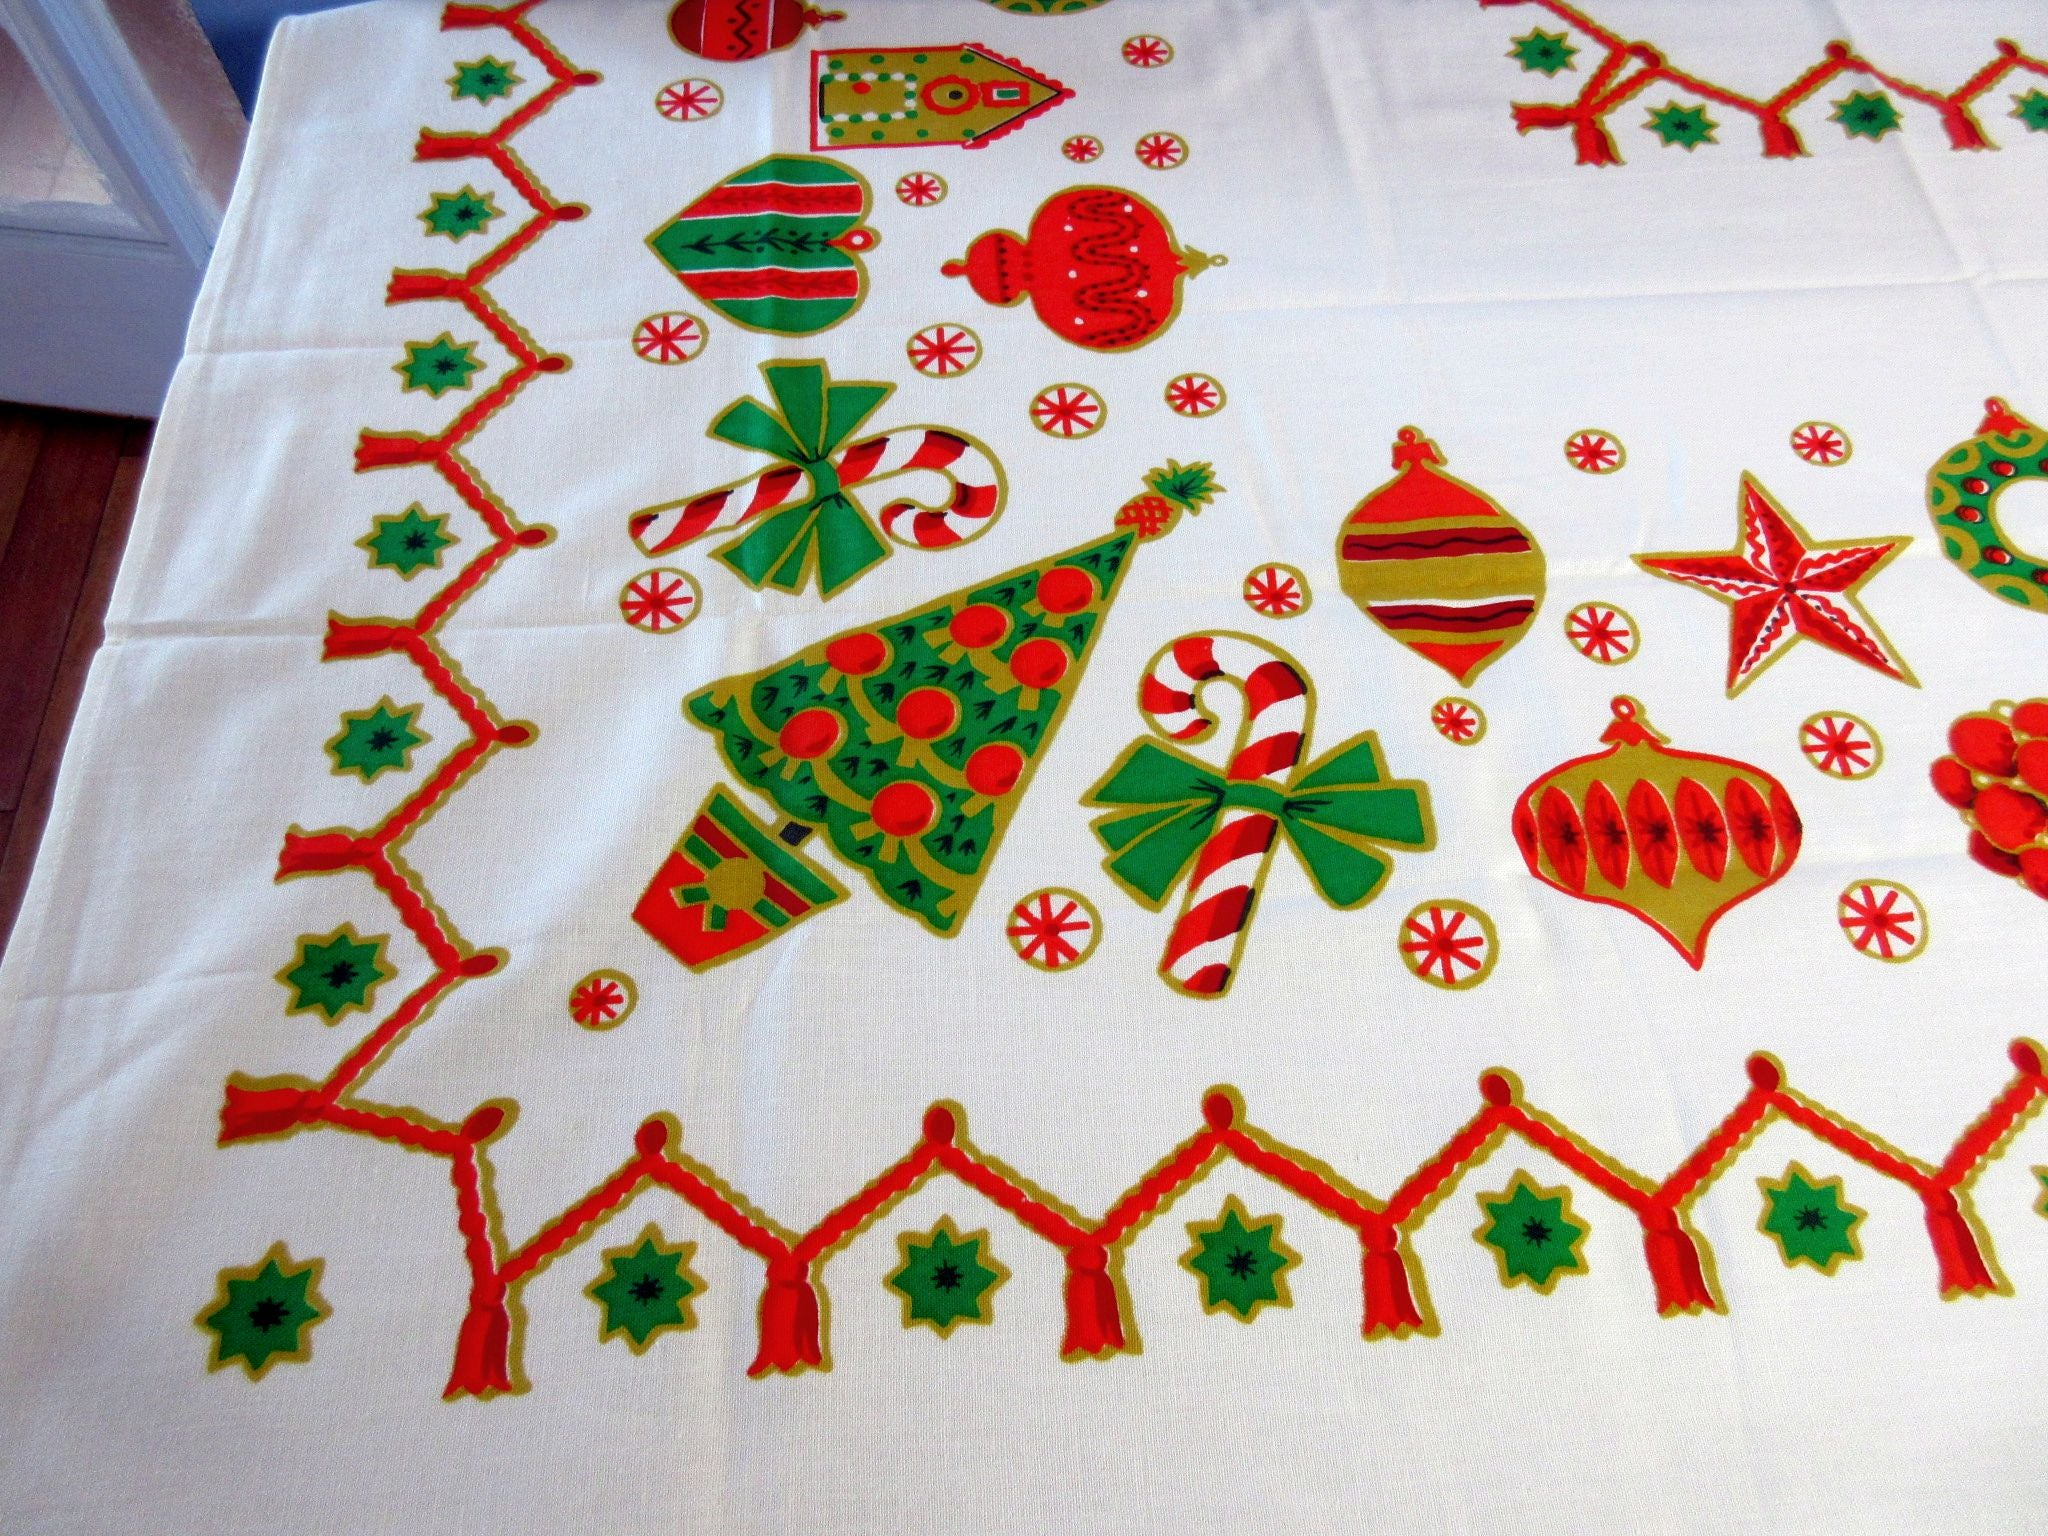 Gingerbread Ornaments MWT Simtex Christmas Vintage Printed Tablecloth (67 X 53)